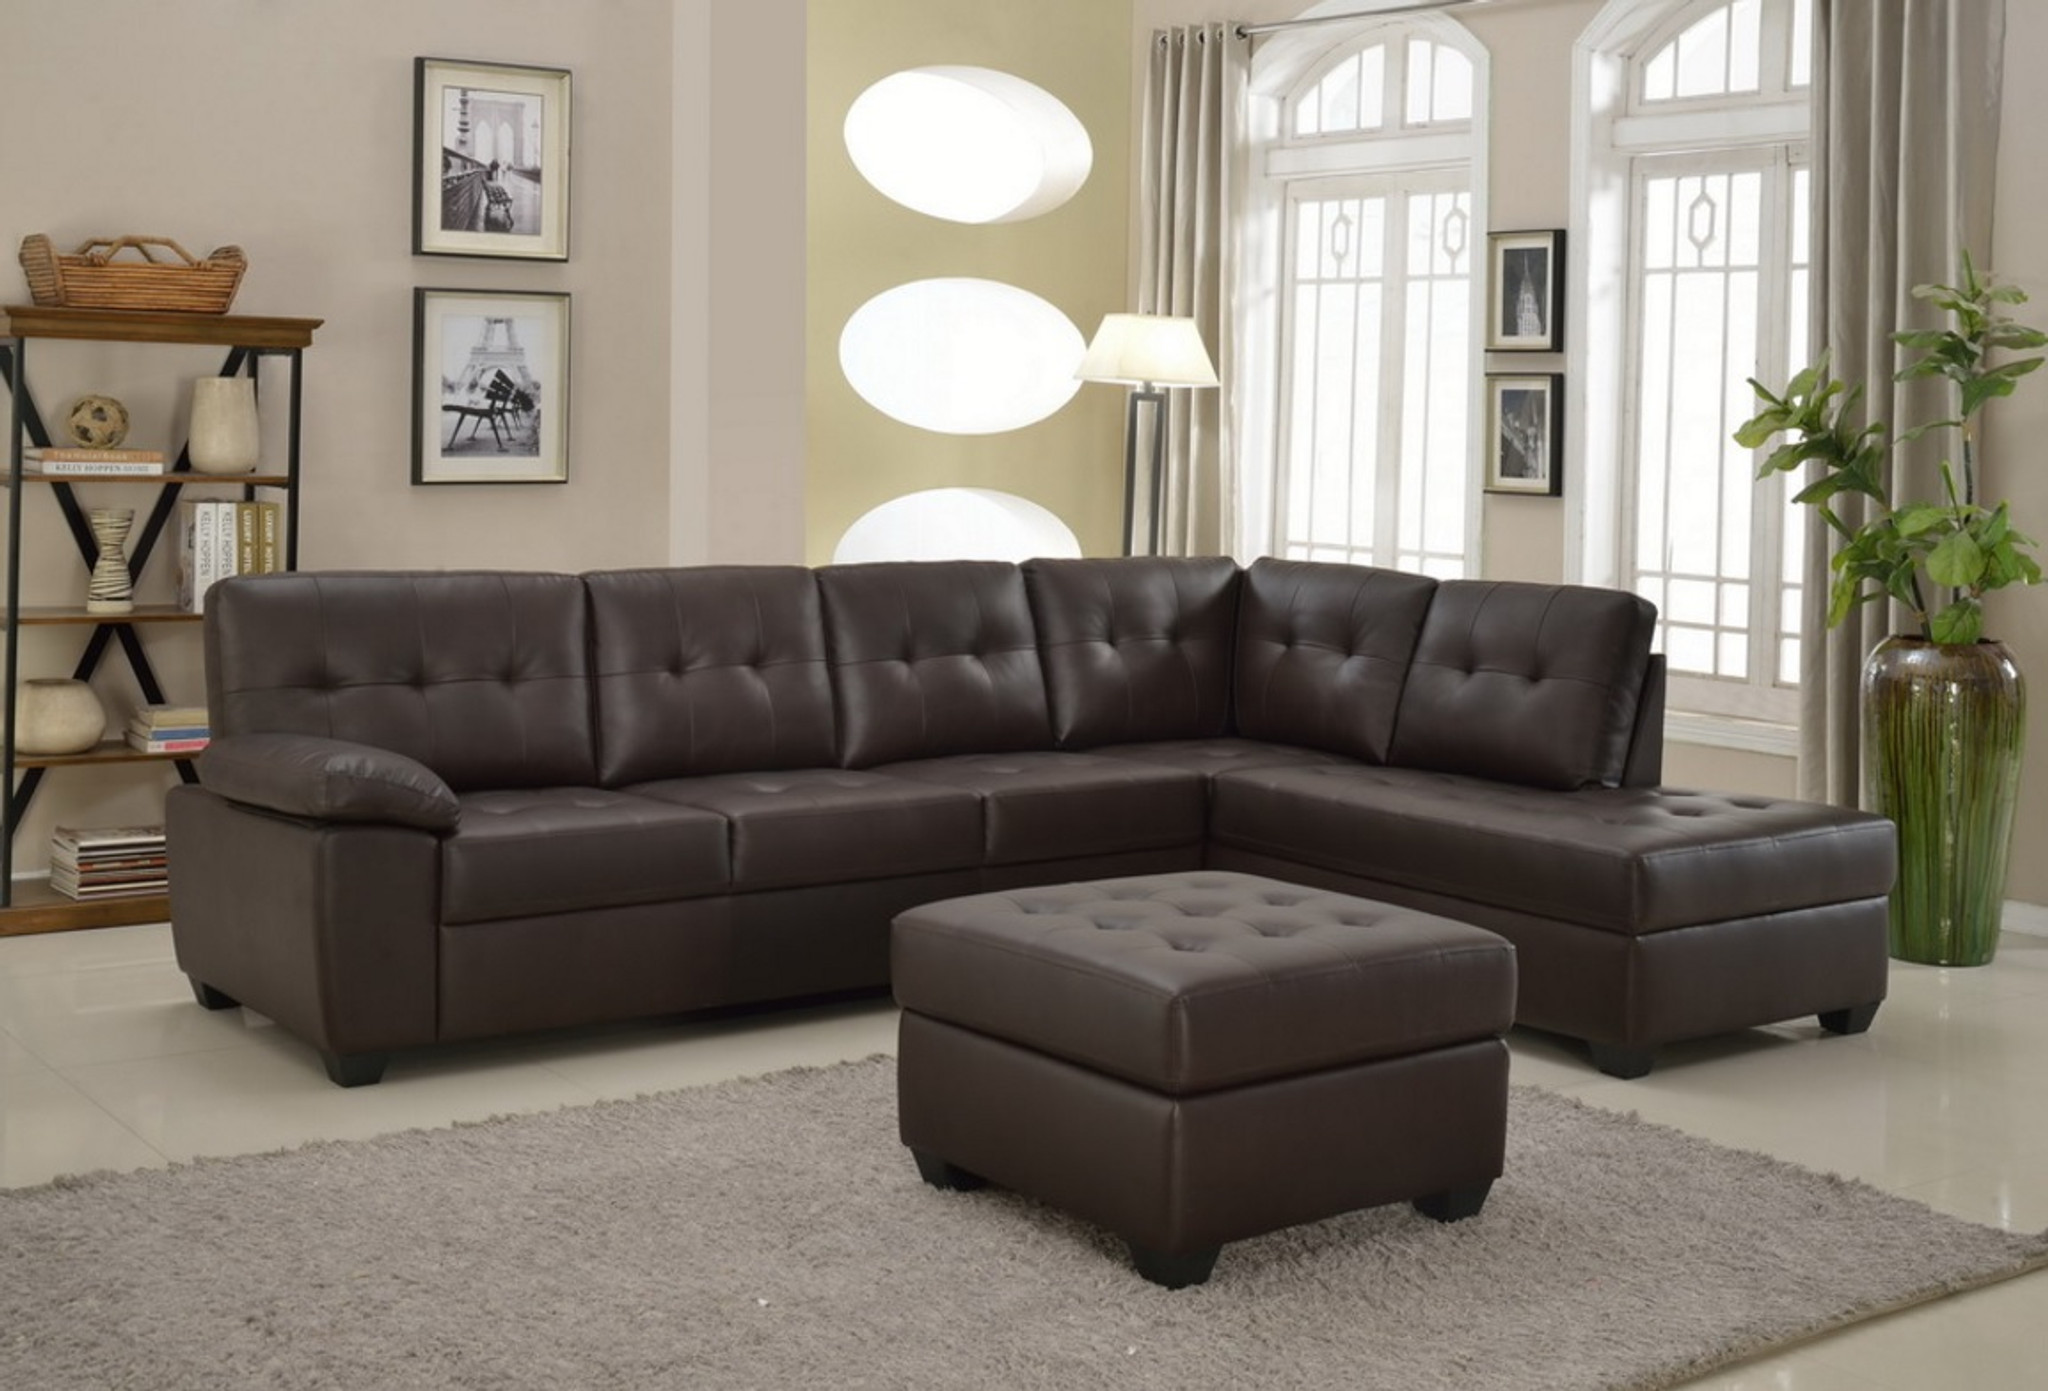 3PCS BROWN LEATHER SECTIONAL SOFA CHAISE AND OTTOMAN - Kassa Mall ...